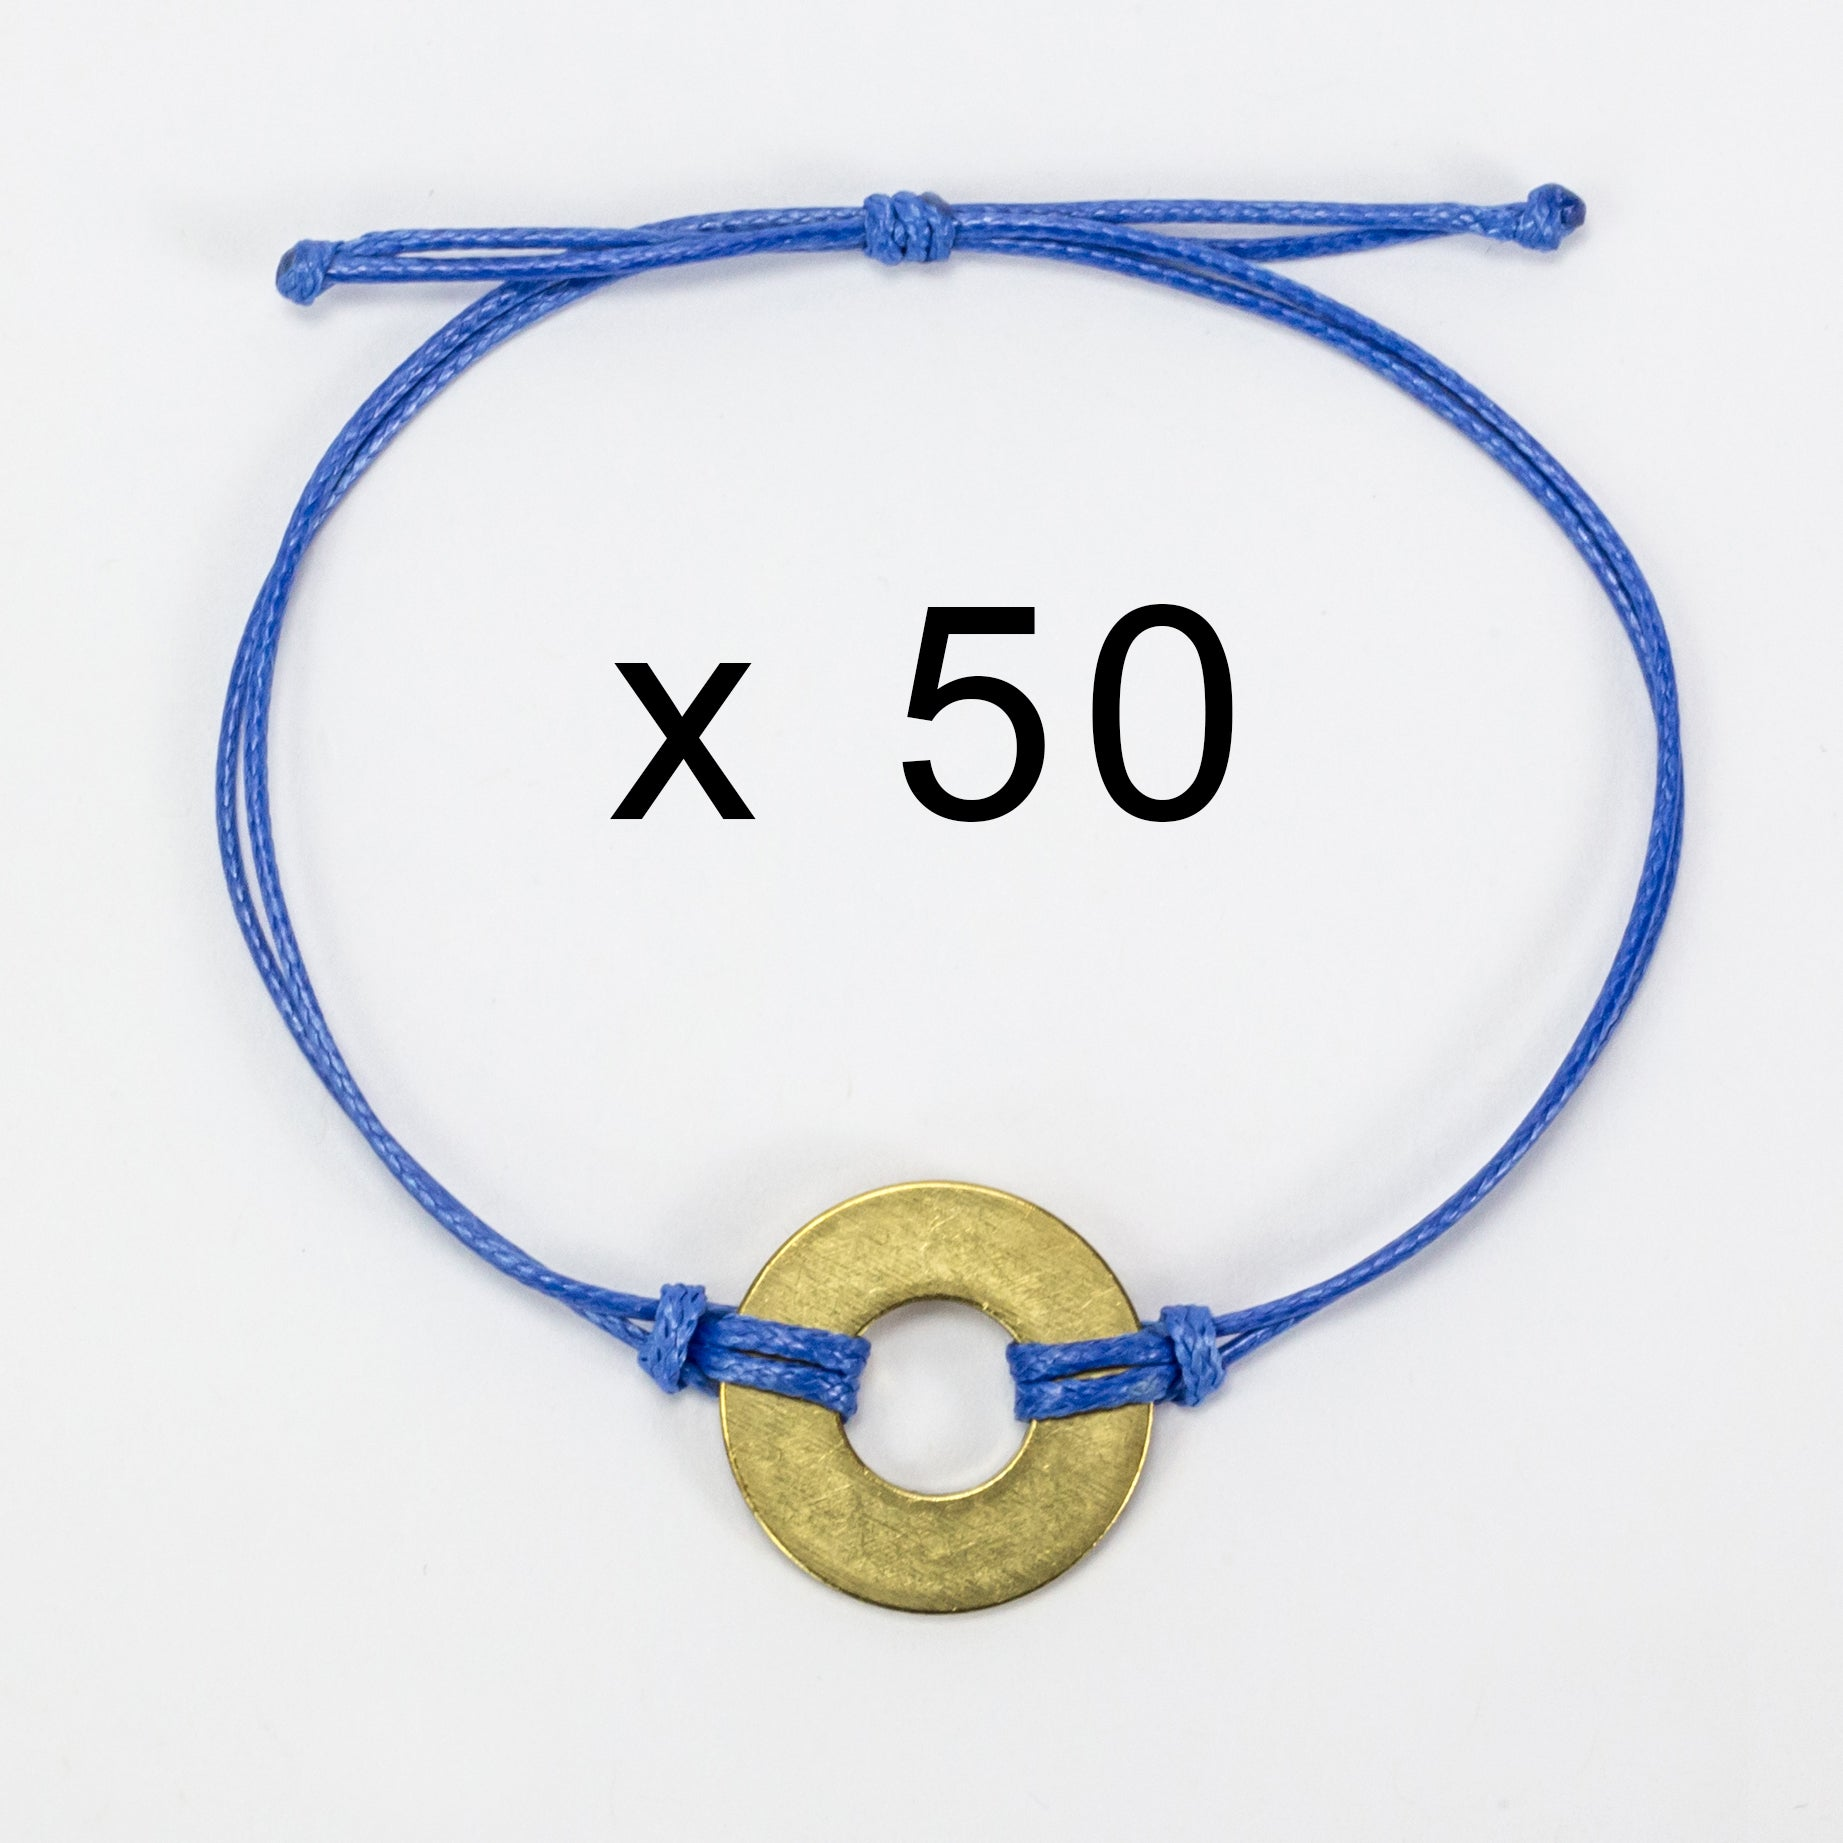 MyIntent Refill Classic Bracelets Blue String set of 50 with Brass tokens